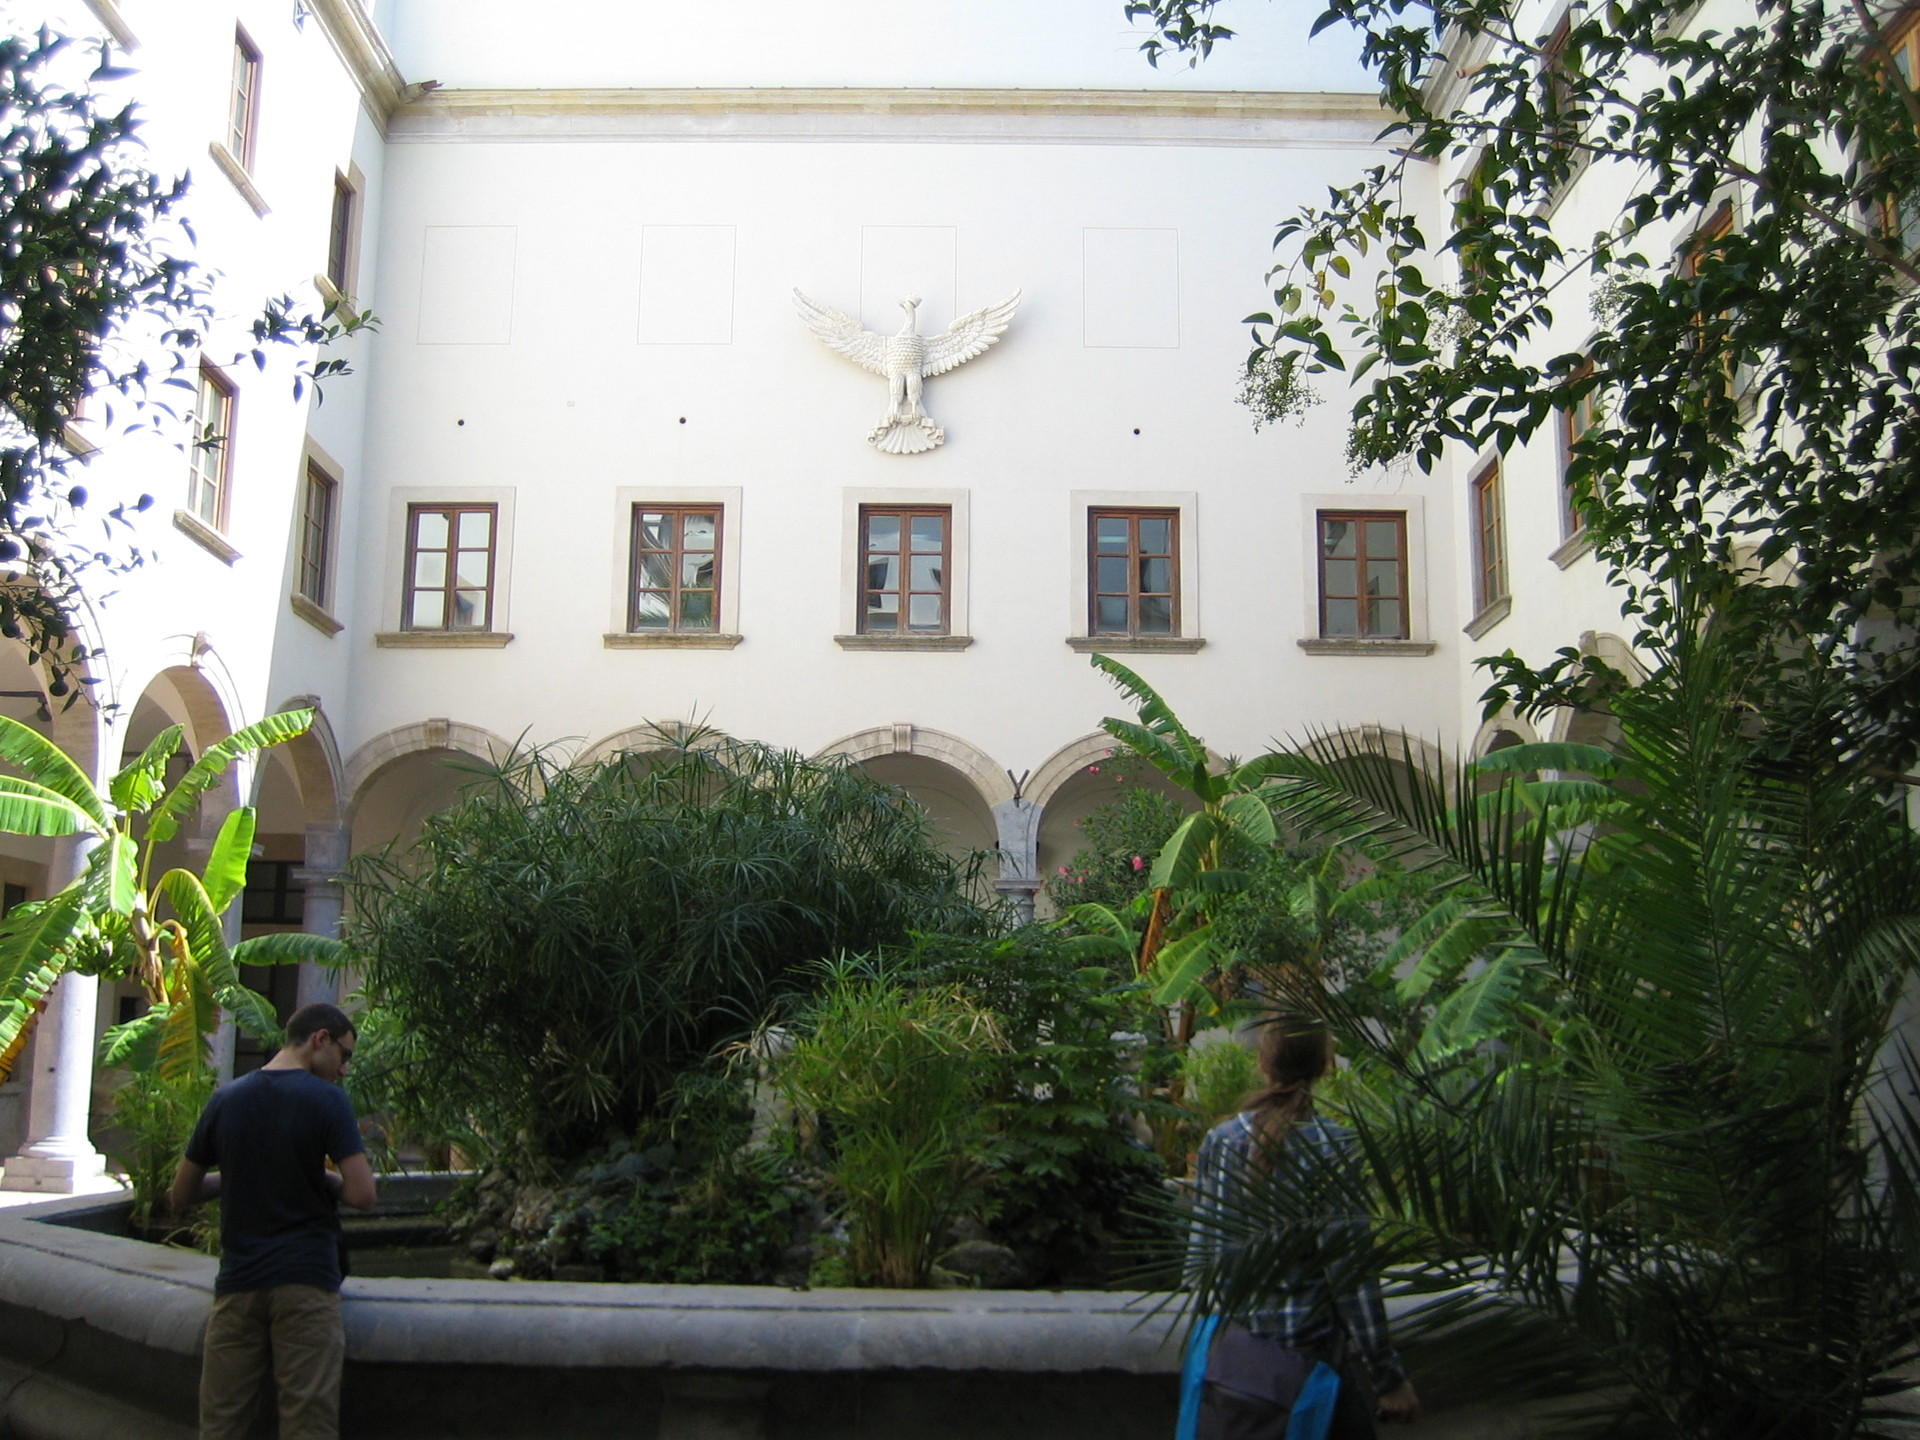 Palermo Museum: Introduction